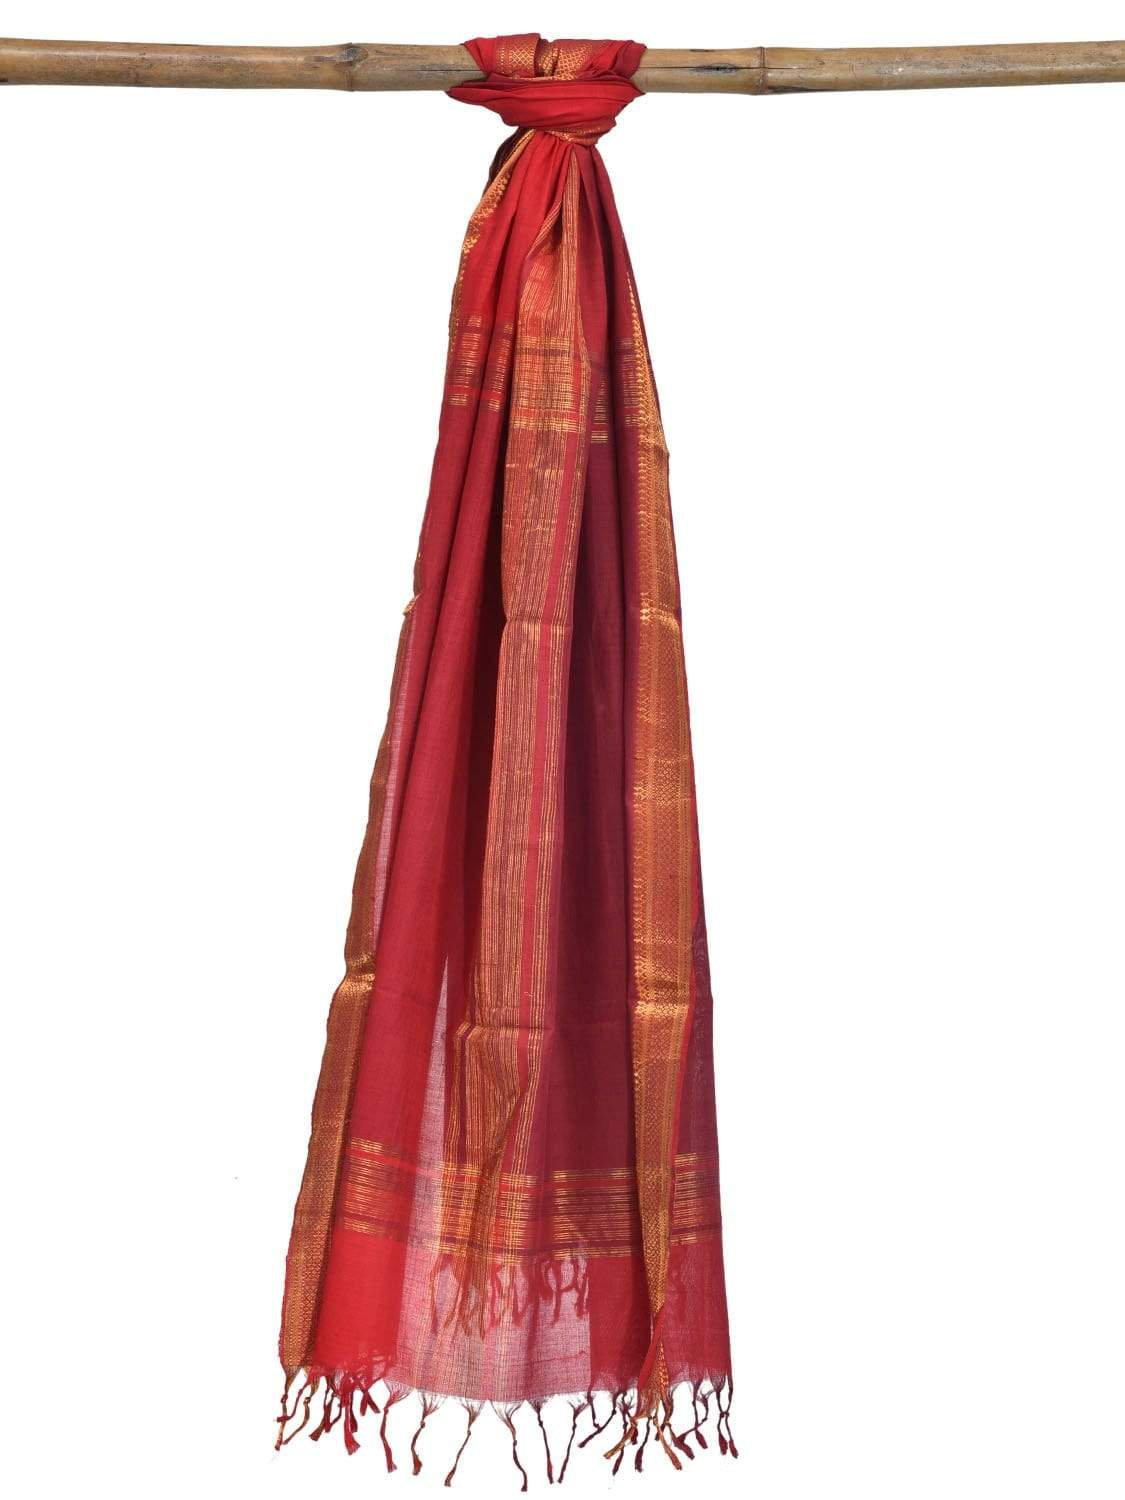 Red Mangalgiri Cotton Handloom Dupatta with Zari Border ds1853